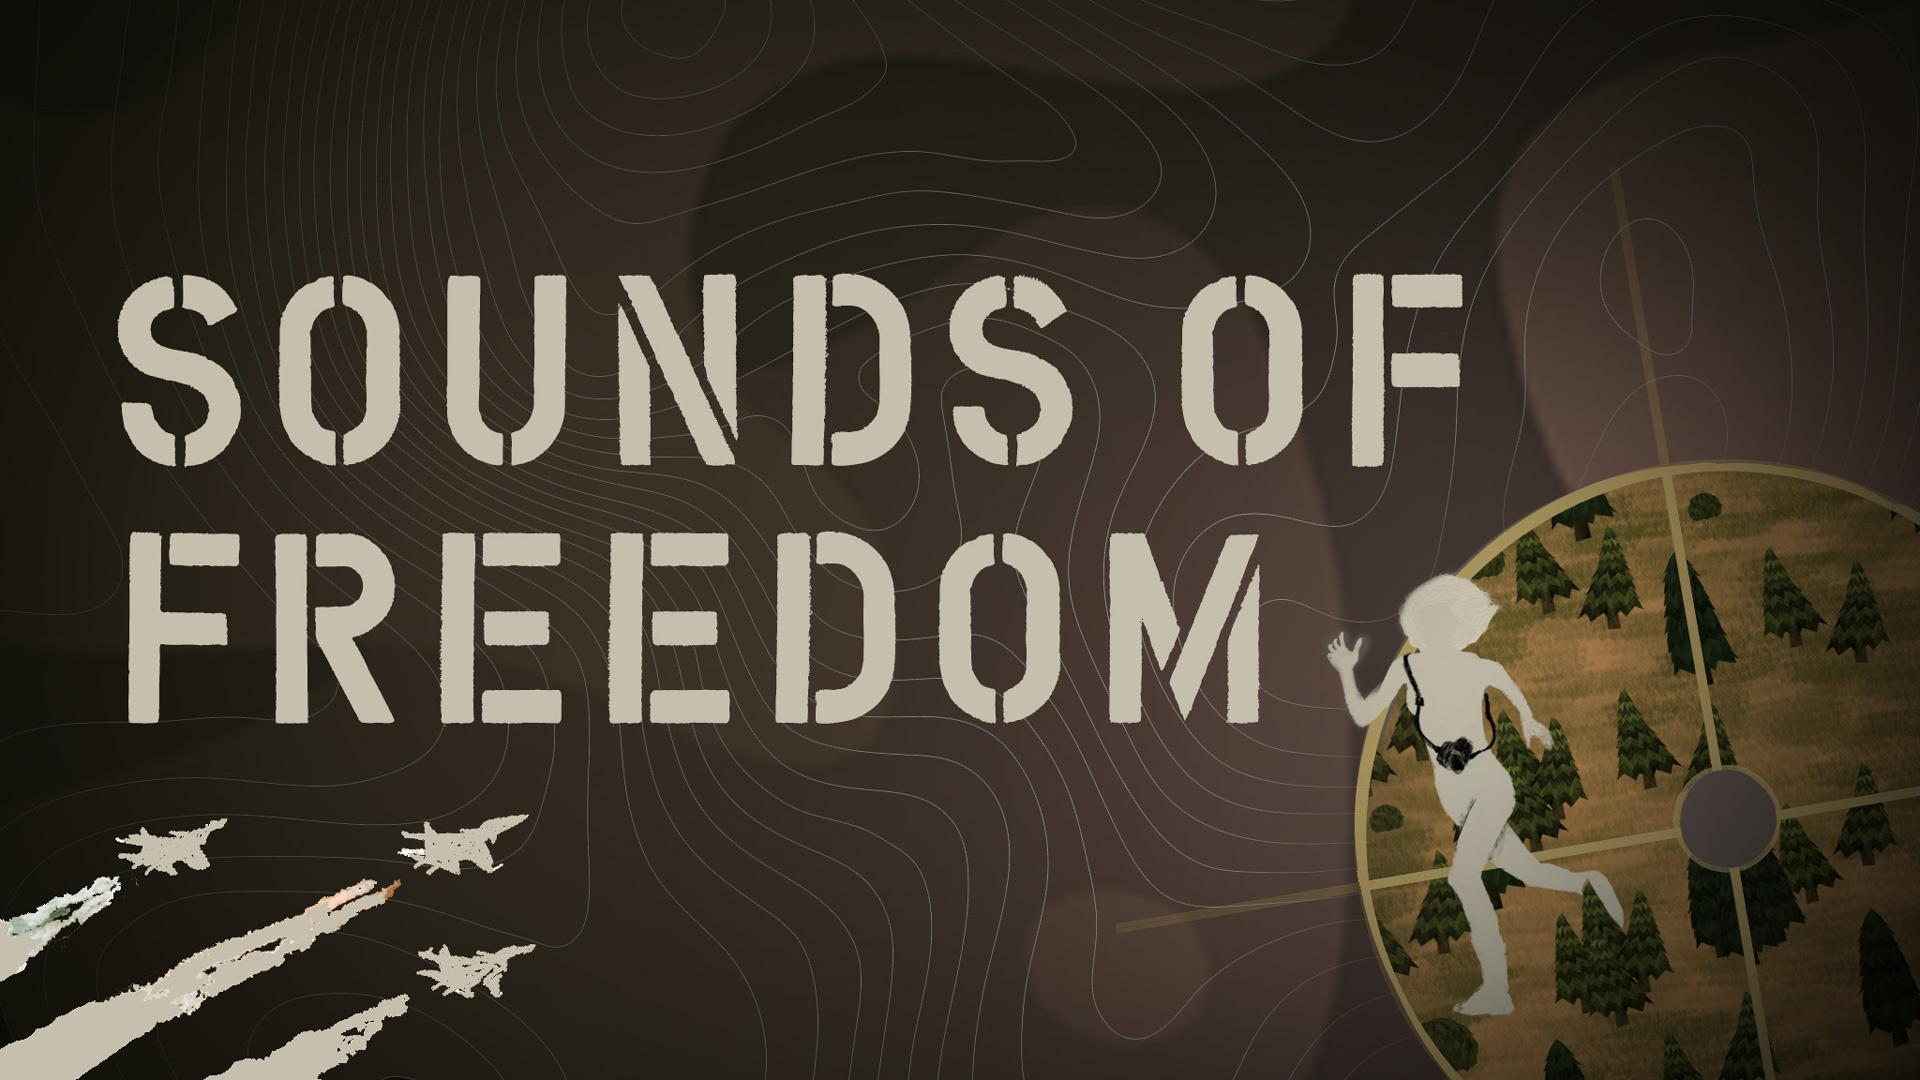 Sounds of Freedom